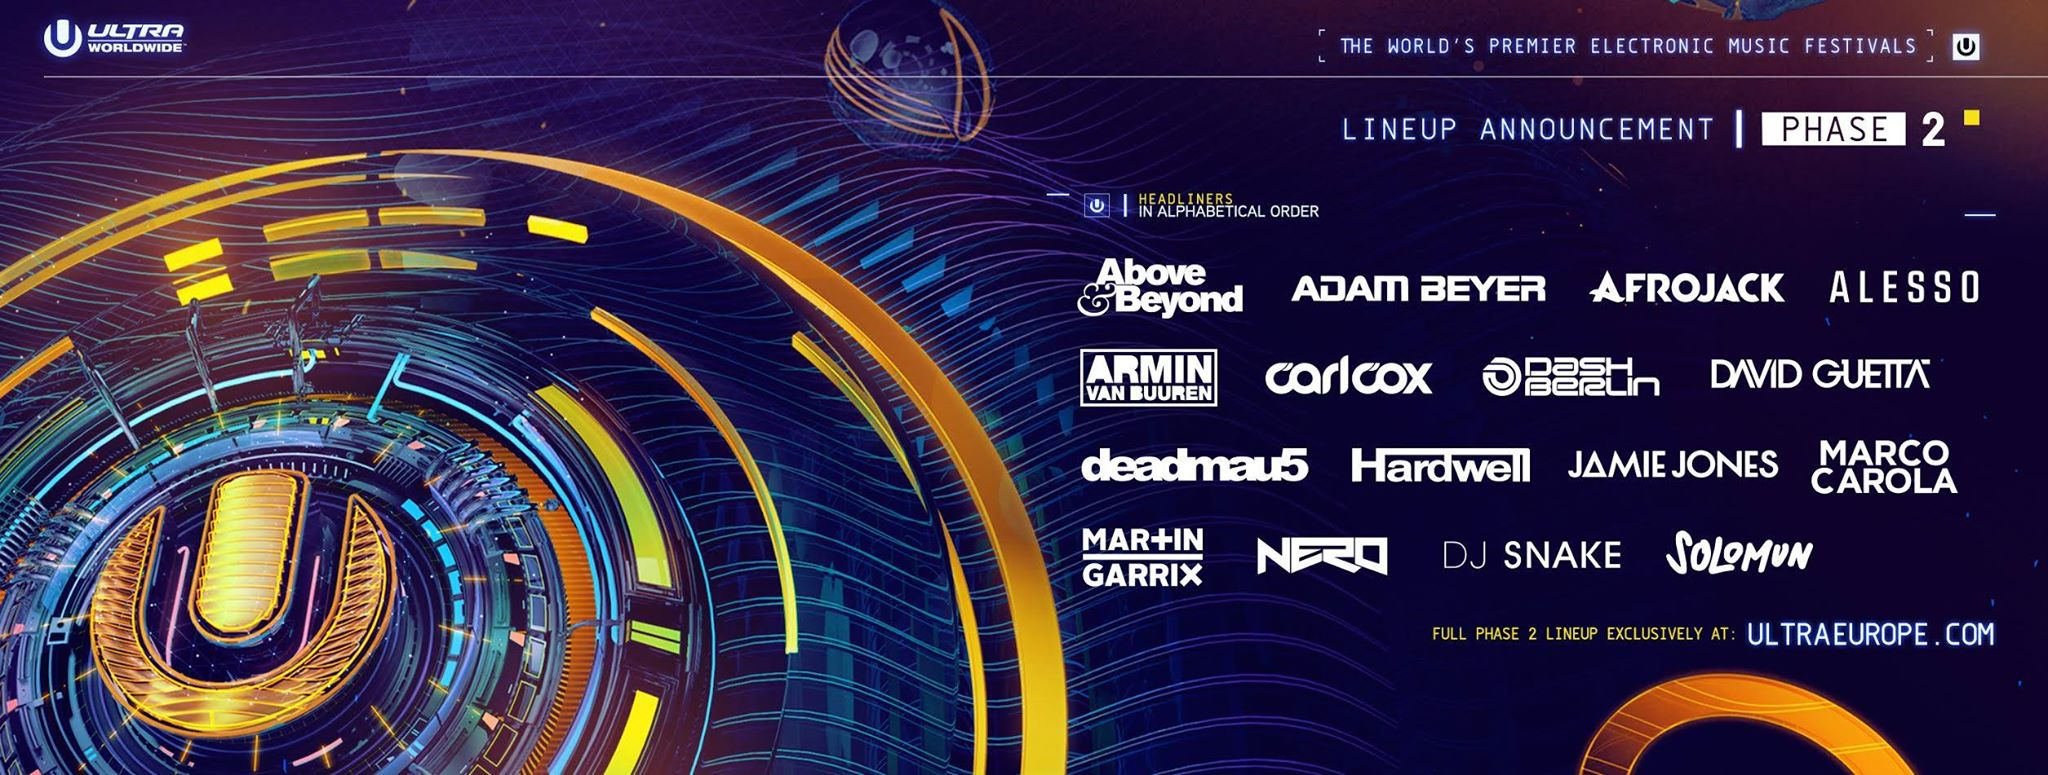 Ultra Europe 2016 Phase 2 Lineup2